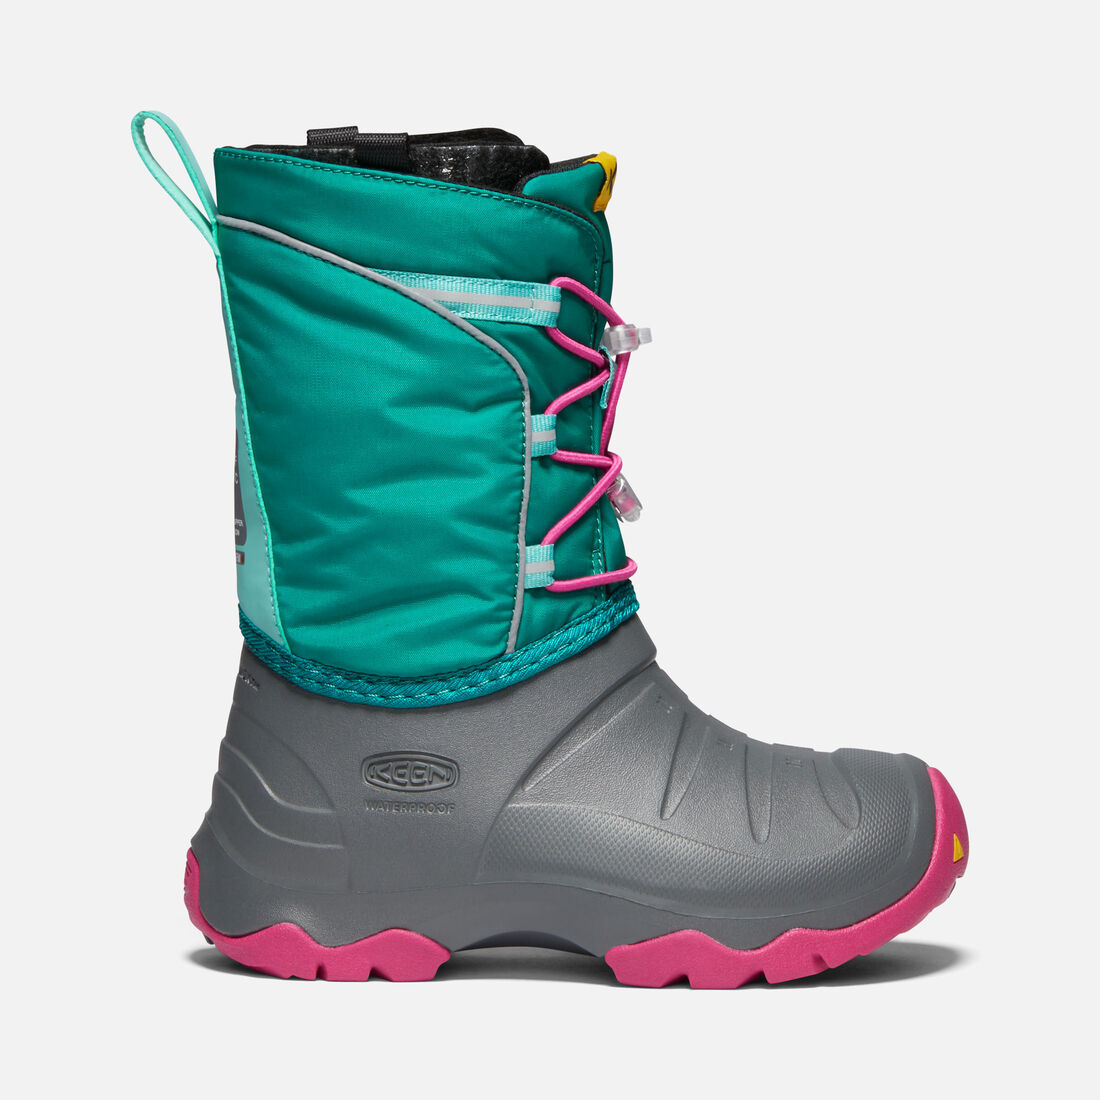 Big Kids' LUMI Waterproof Winter Boot in PARASAILING/DUSTY AQUA - large view.